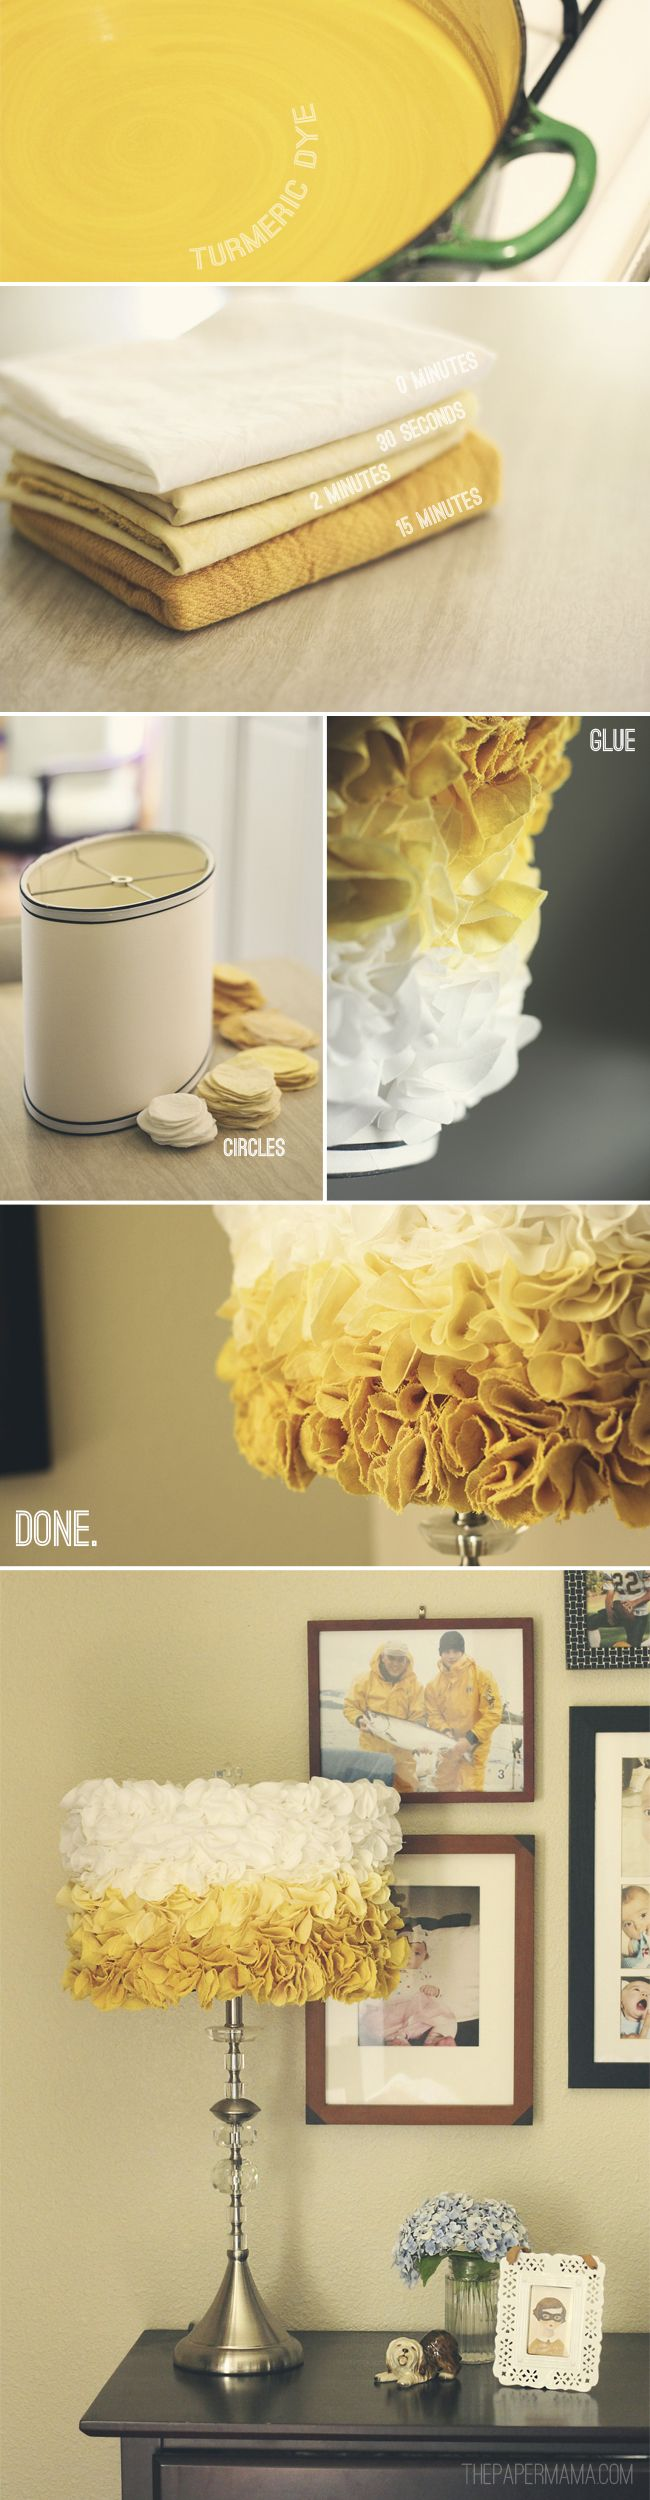 DIY-ify: Natural Turmeric Dye + Ruffled Lampshade on the Better Homes and Gardens blog. via: http://www.bhg.com/blogs/better-homes-and-gardens-style-blog/2012/08/23/diy-ify-natural-turmeric-dye-ruffled-lampshade/